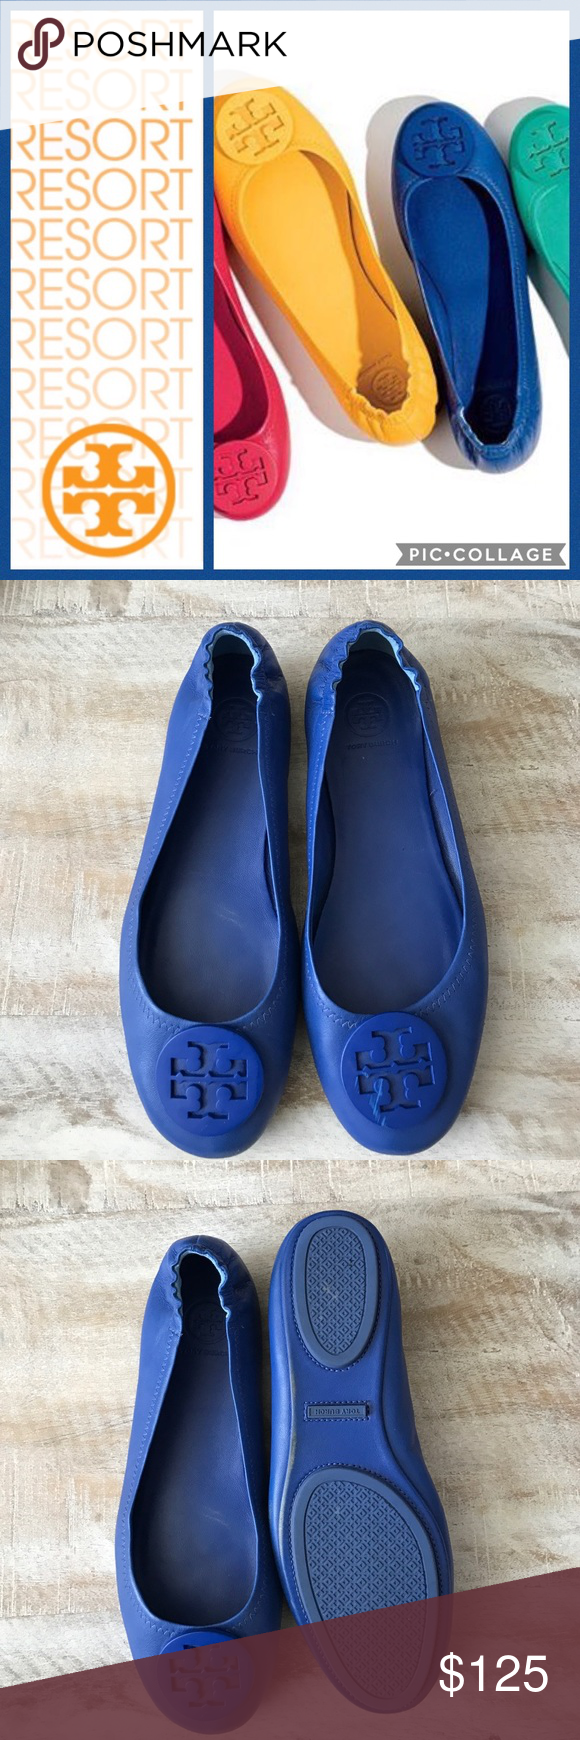 064aed4794e Tory Burch Minnie Travel Ballet Flat Blue sz 8.5 Fold. Pack. Go ...